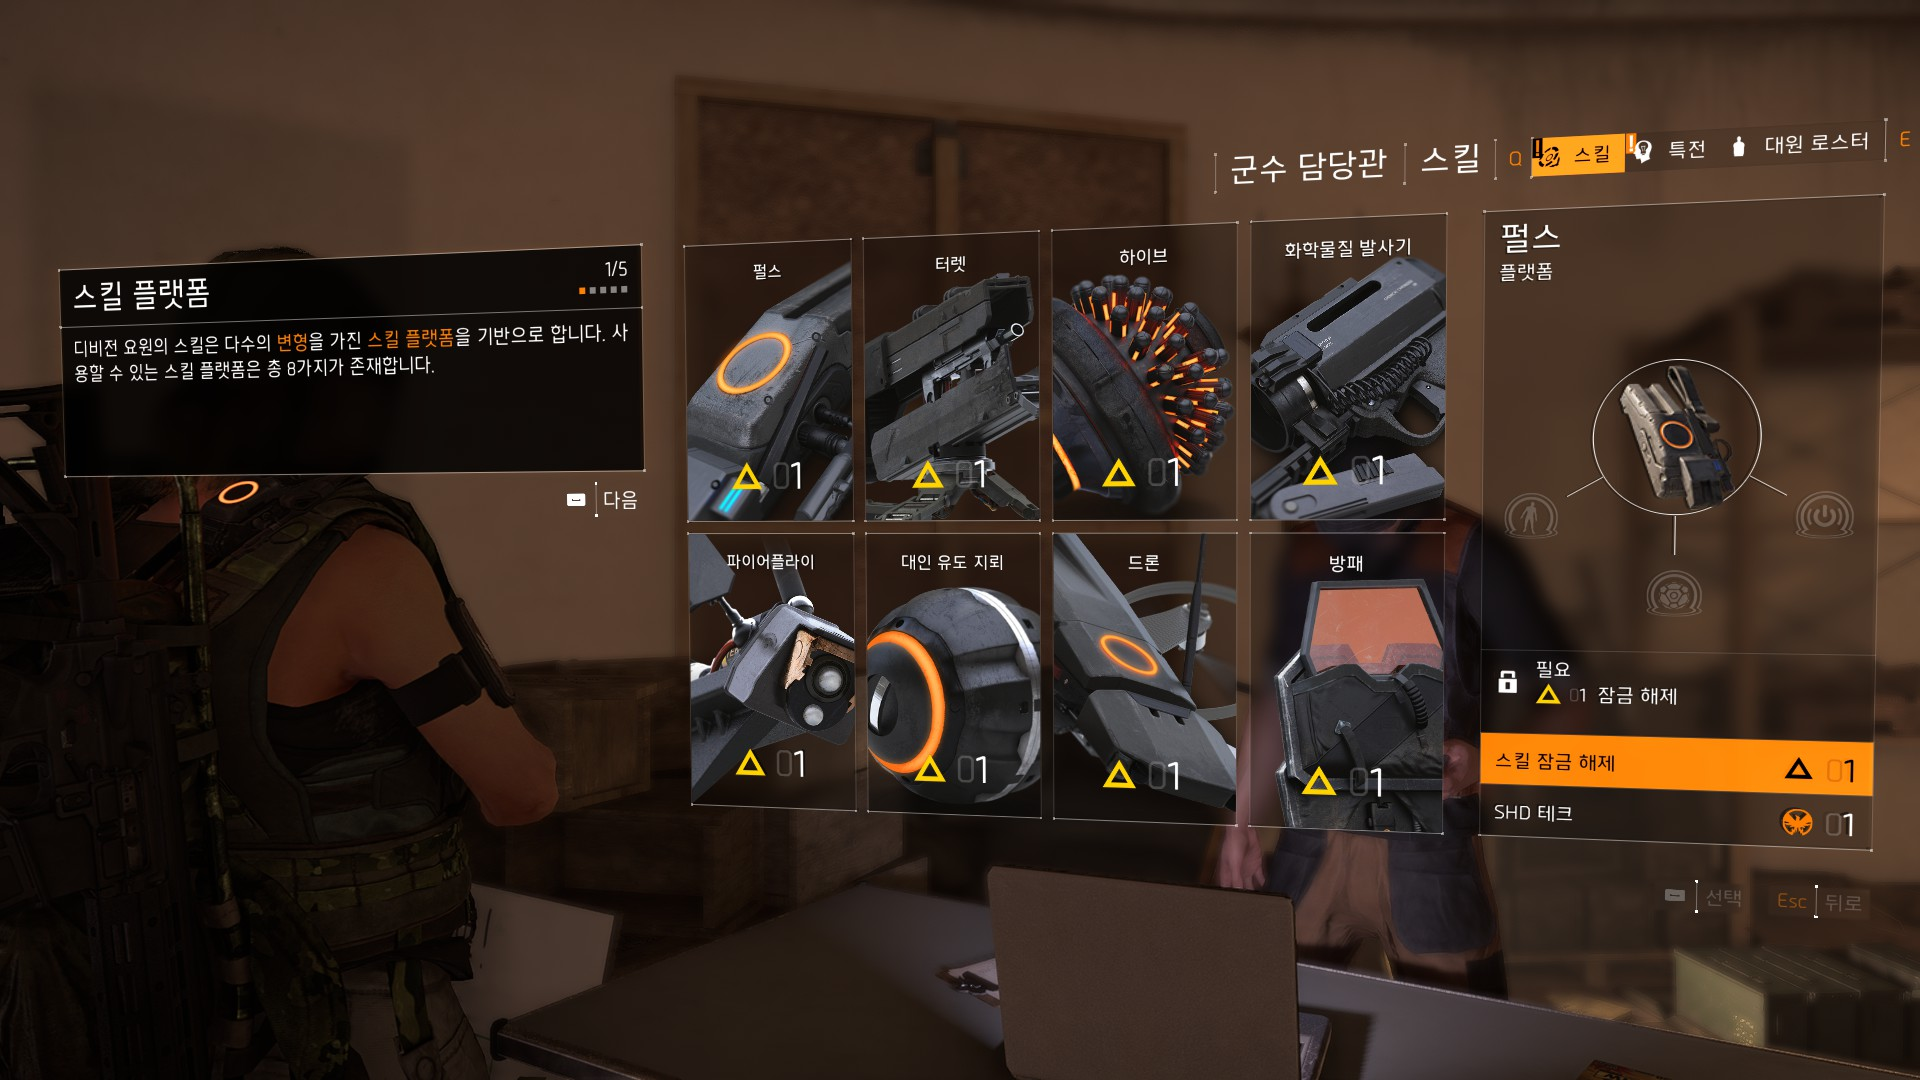 Tom Clancy's The Division® 22019-3-11-23-8-43.jpg